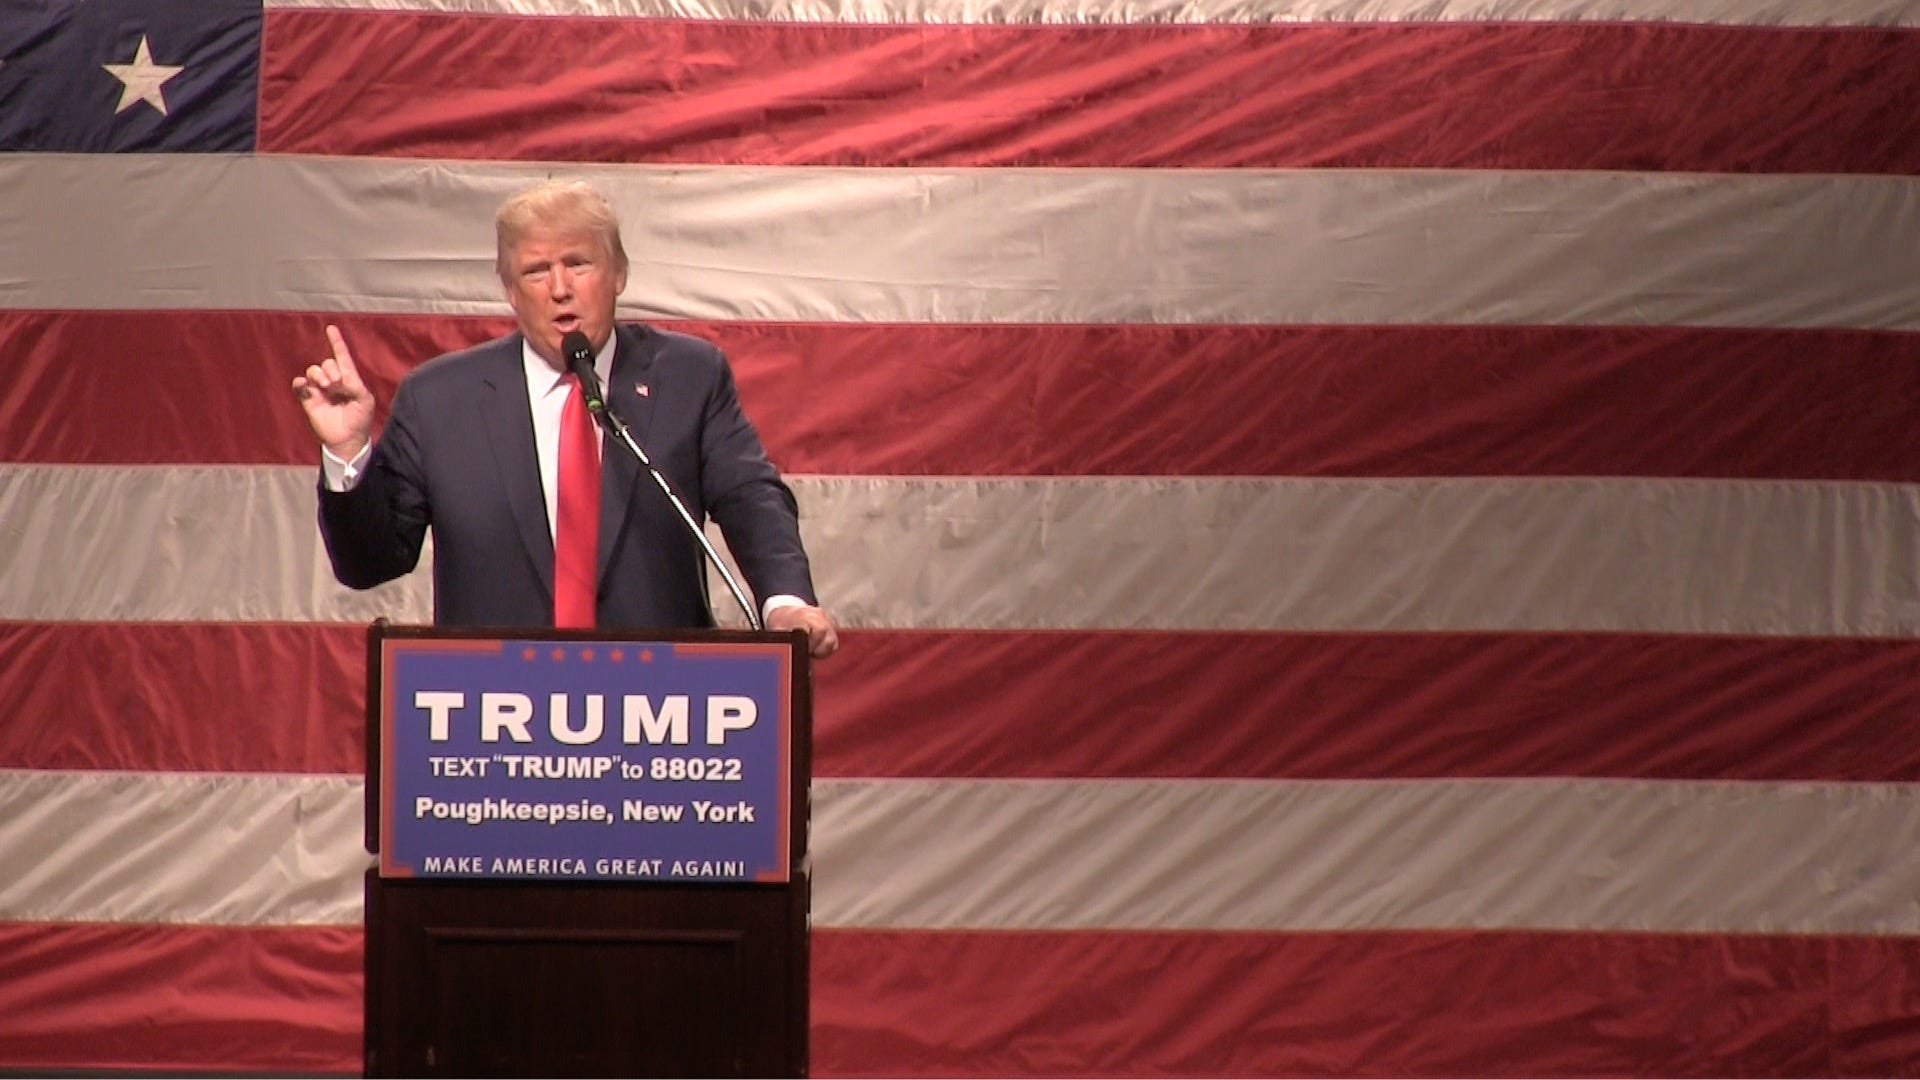 Donald Trump speaks at the Mid-Hudson Civic Center in Poughkeepsie